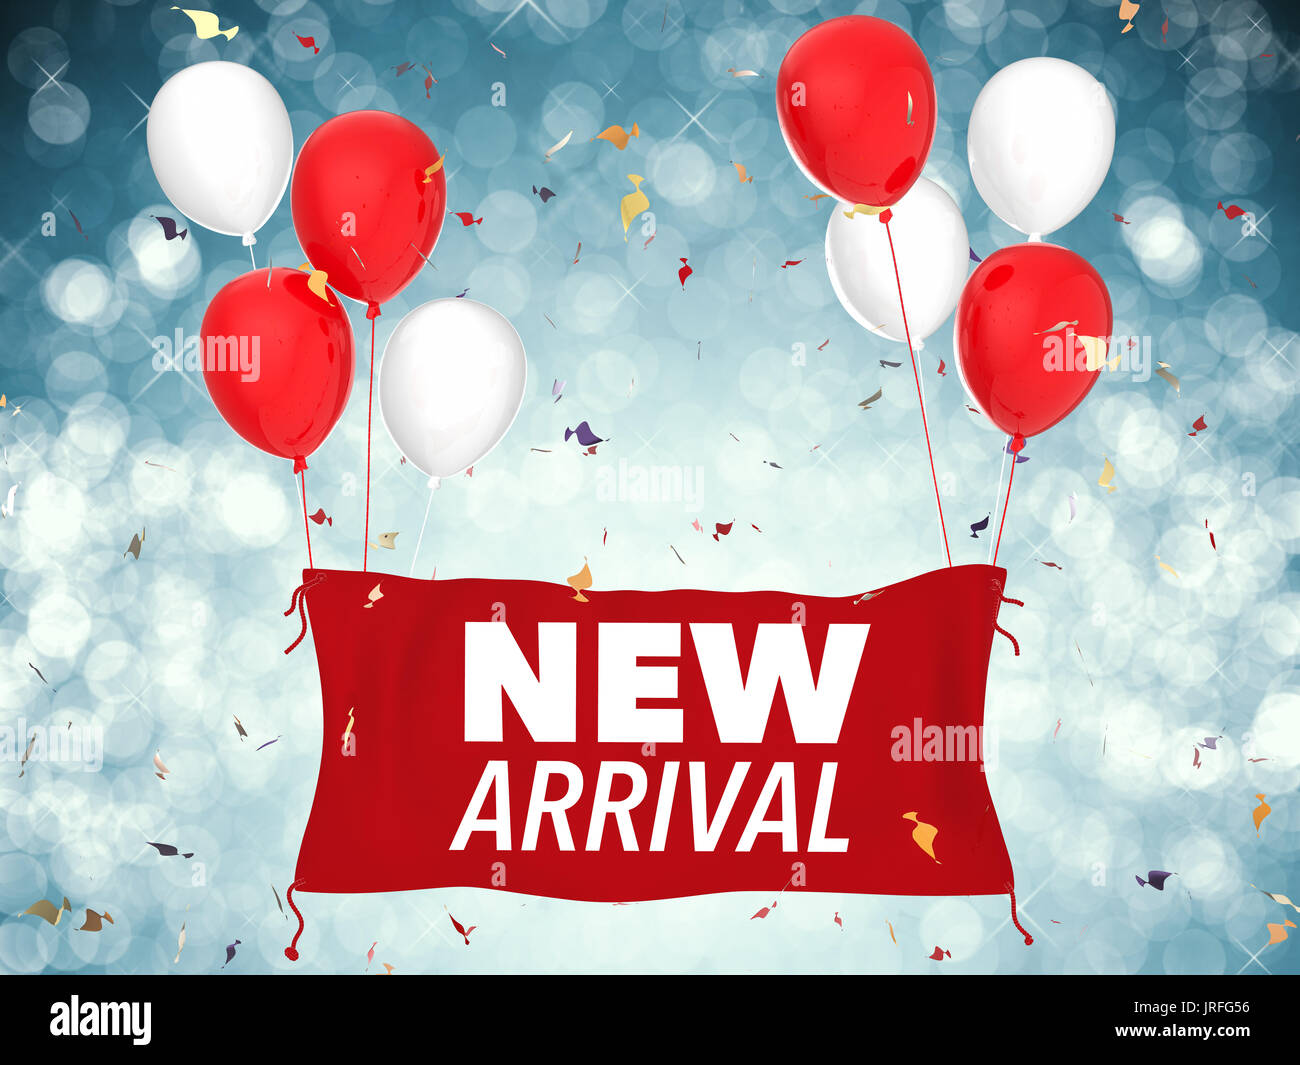 3f46ee14 3d rendering new arrival concept with red cloth banner, red balloons and  confetti